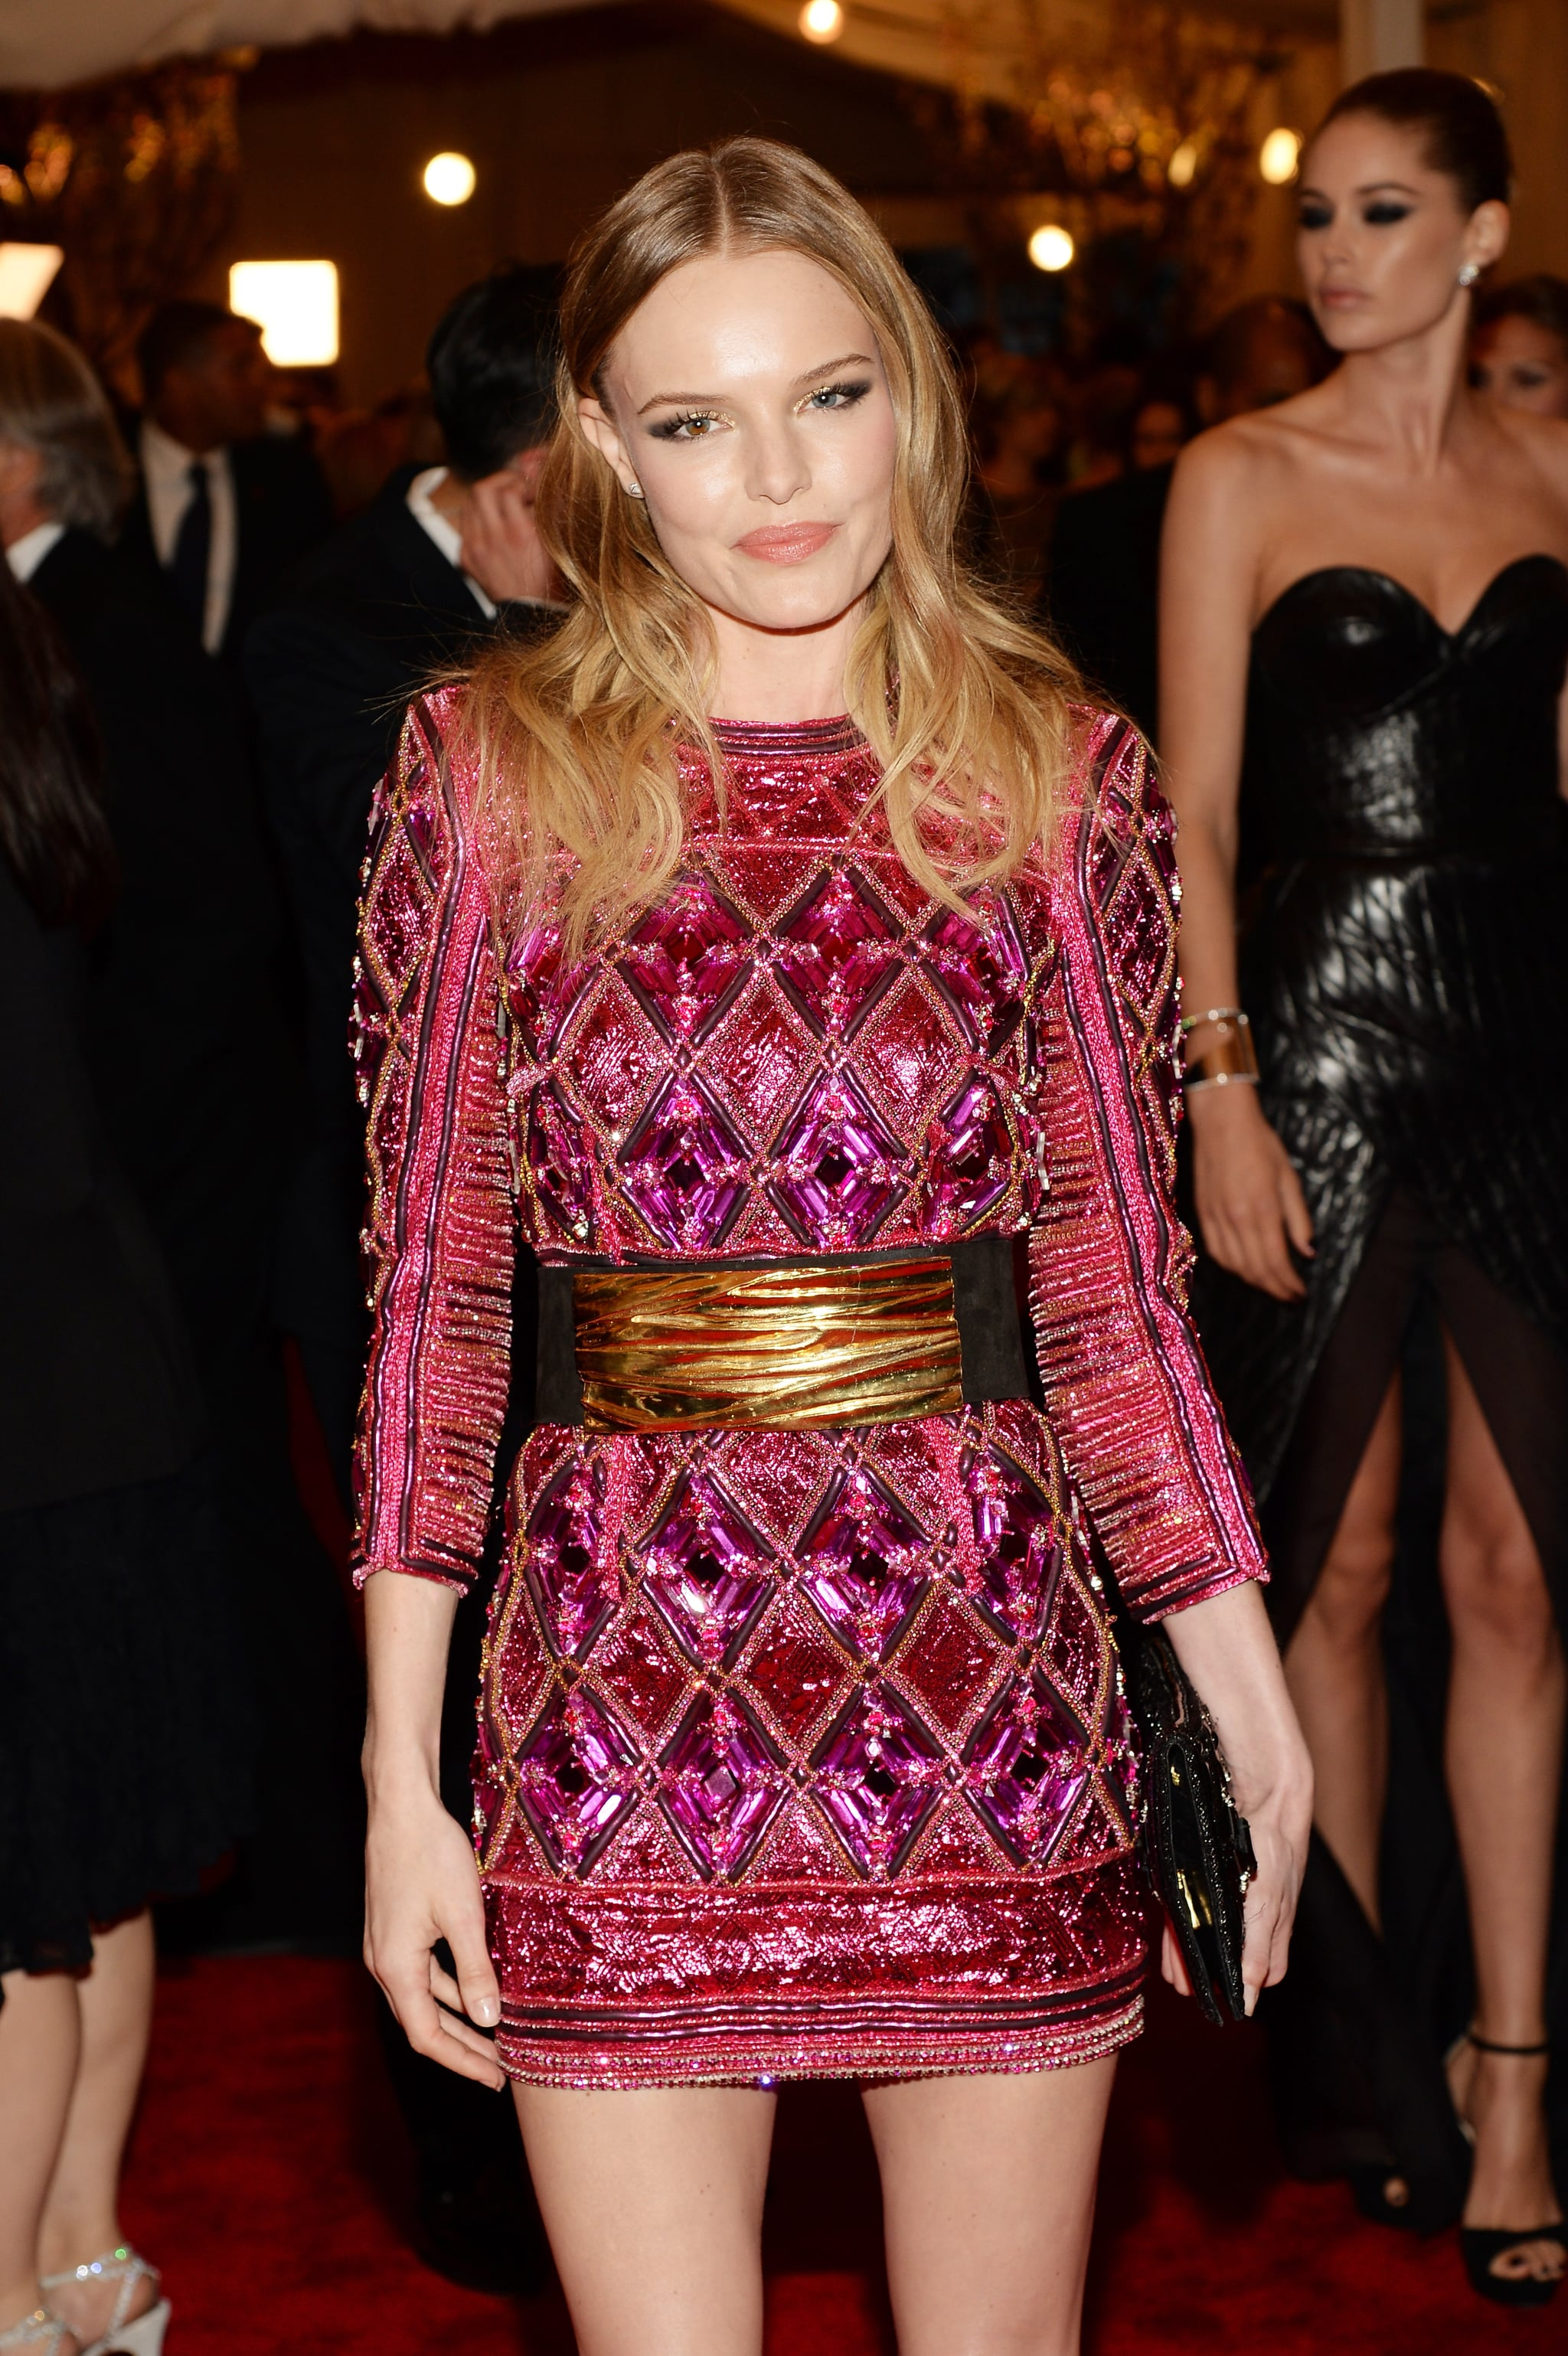 Kate Bosworth is known for her beachy waves, and she rocked them well at the Met Gala.